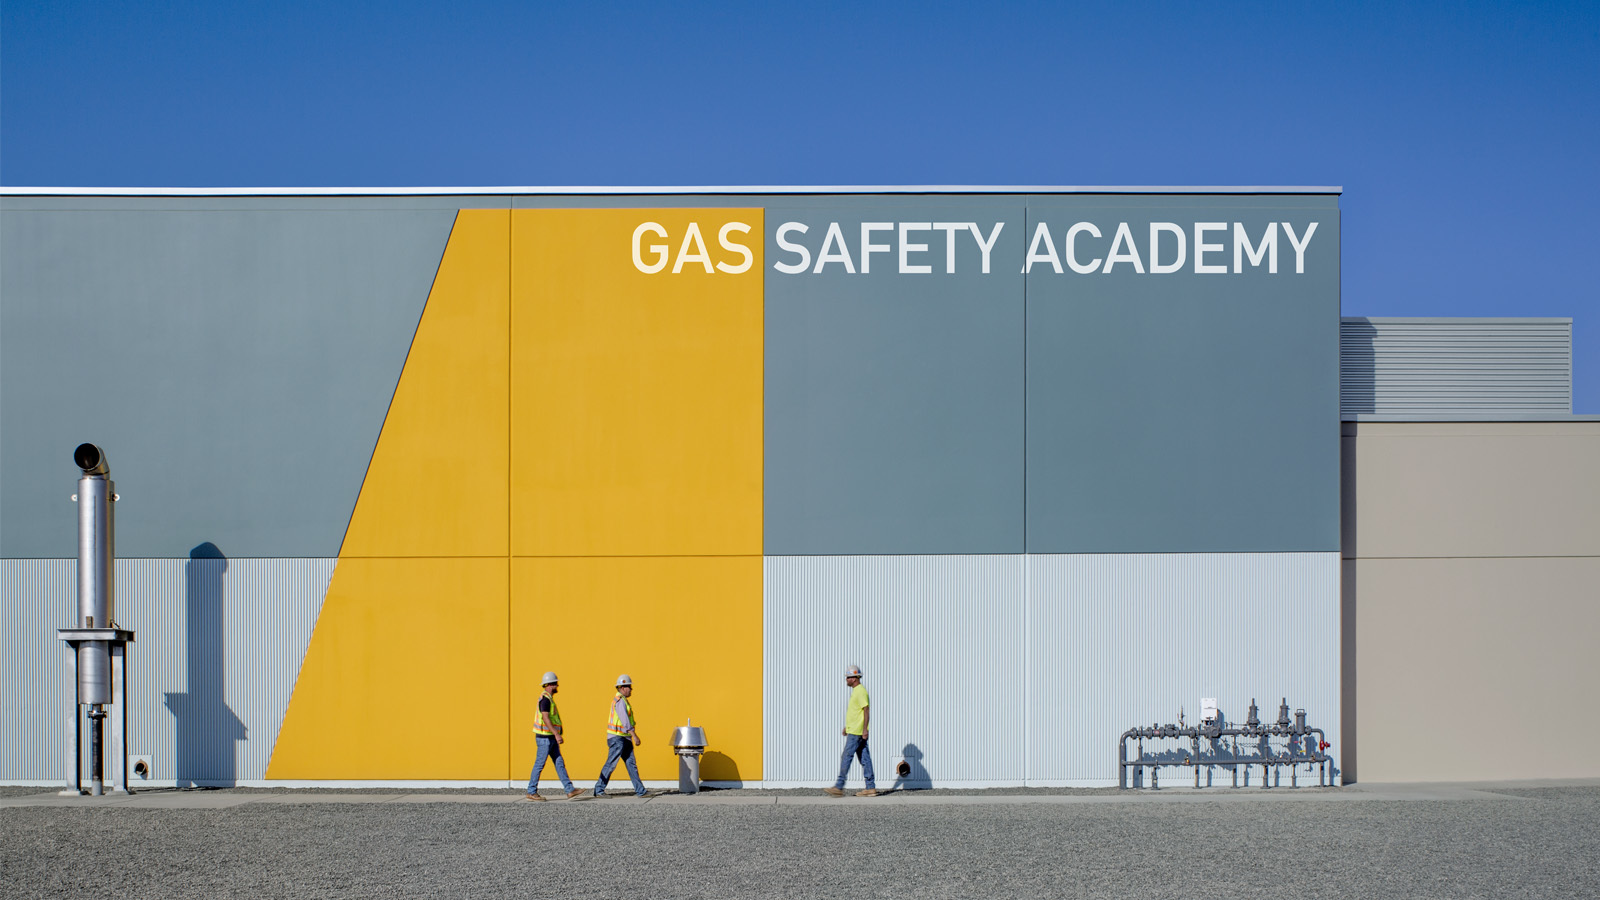 Photo of employees outside the PG&E Gas Safety Academy.